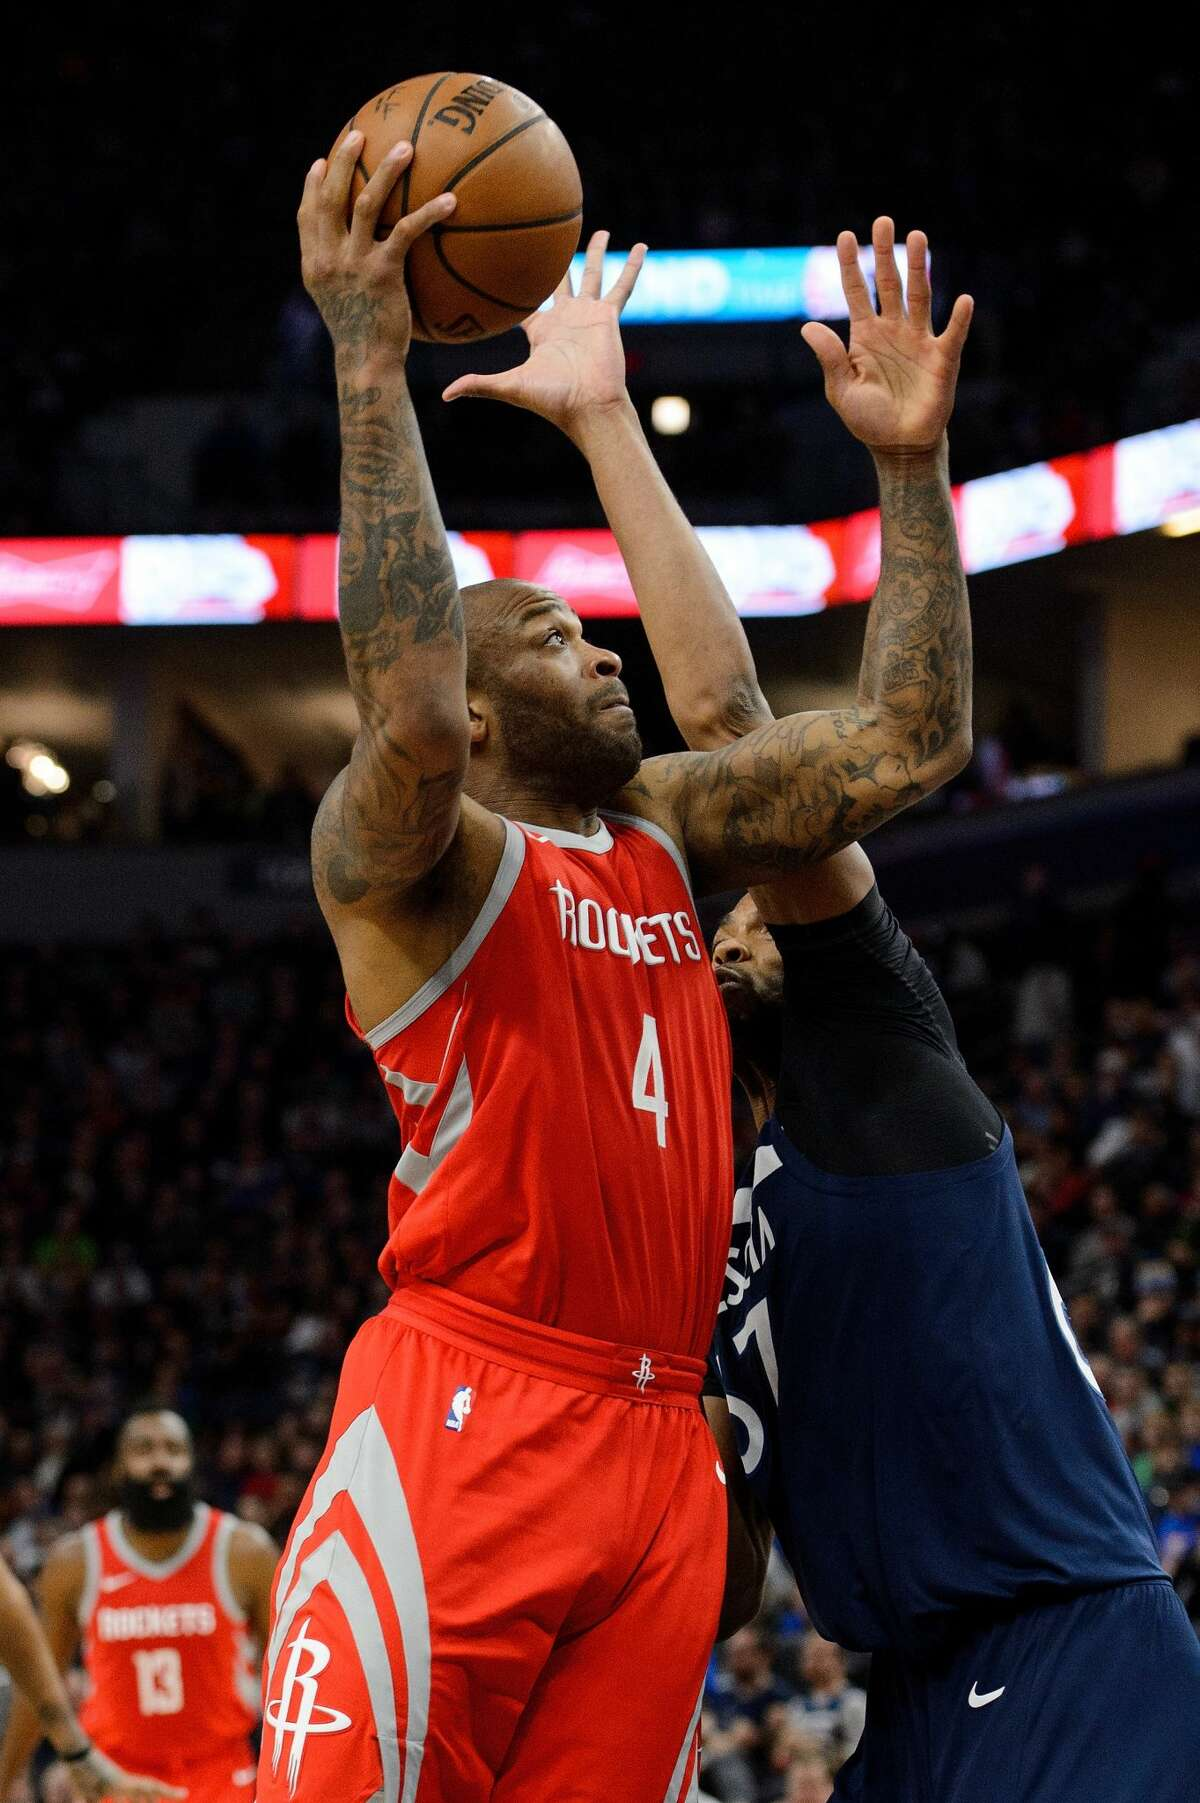 Forwards P.J. Tucker does not post up often, if ever, and Taj Gibson does not work one-on-one inside often, but it would be fun to see the hand-to-hand combat against another if those occasions do occur. Tucker's impact defensively is so great in part because of his ability to switch on everyone from Jeff Teague to Karl-Anthony Towns. He has made 55.6 percent of his 3s against the Timberwolves, but will take on an even greater role if Ryan Anderson does not play with the Wolves often giving up pick-and-pop 3-pointers to protect the lane. Trevor Ariza's play also becomes more crucial because of an injury with Luc Mbah a Moute out. The Wolves' Andrew Wiggins can be an x factor. Wiggins struggled badly in the first two meetings with the Rockets, but was more effective in the latter two games. Gibson's stellar interior defense is less of a factor against a team that takes him out to the 3-point line. Edge: Even. The Wolves should have the edge with Wiggins, but the 3-point shooting of Tucker and Ariza tend to negate that. Gibson is an outstanding finisher in the lane, averaging 8.5 points against the Rockets, one fewer than Tucker has against the Wolves.